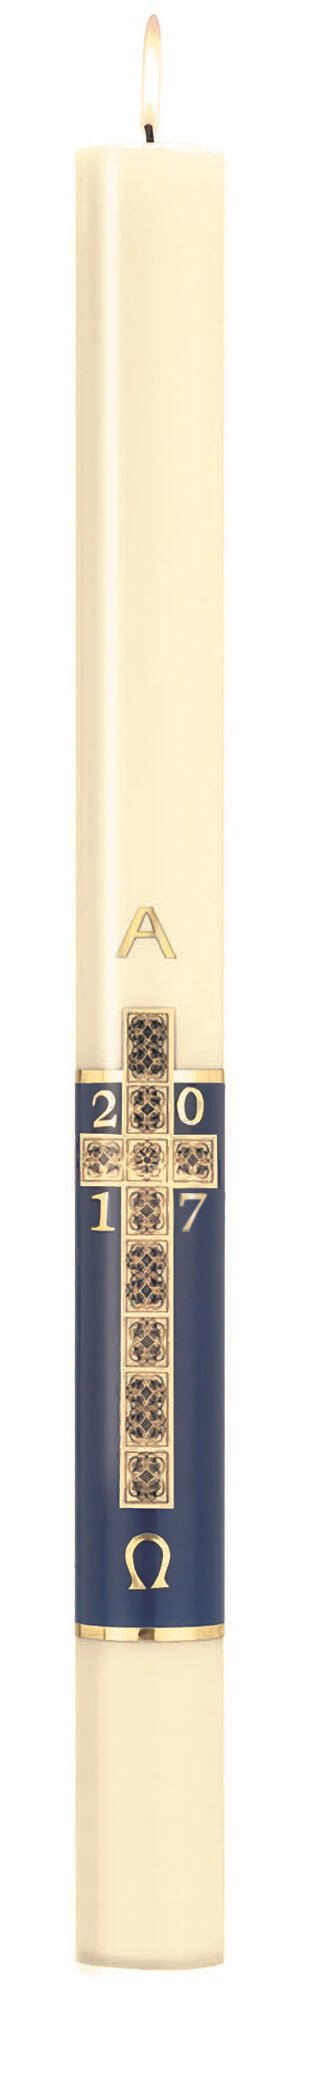 No 4 Holy Cross Paschal Candle